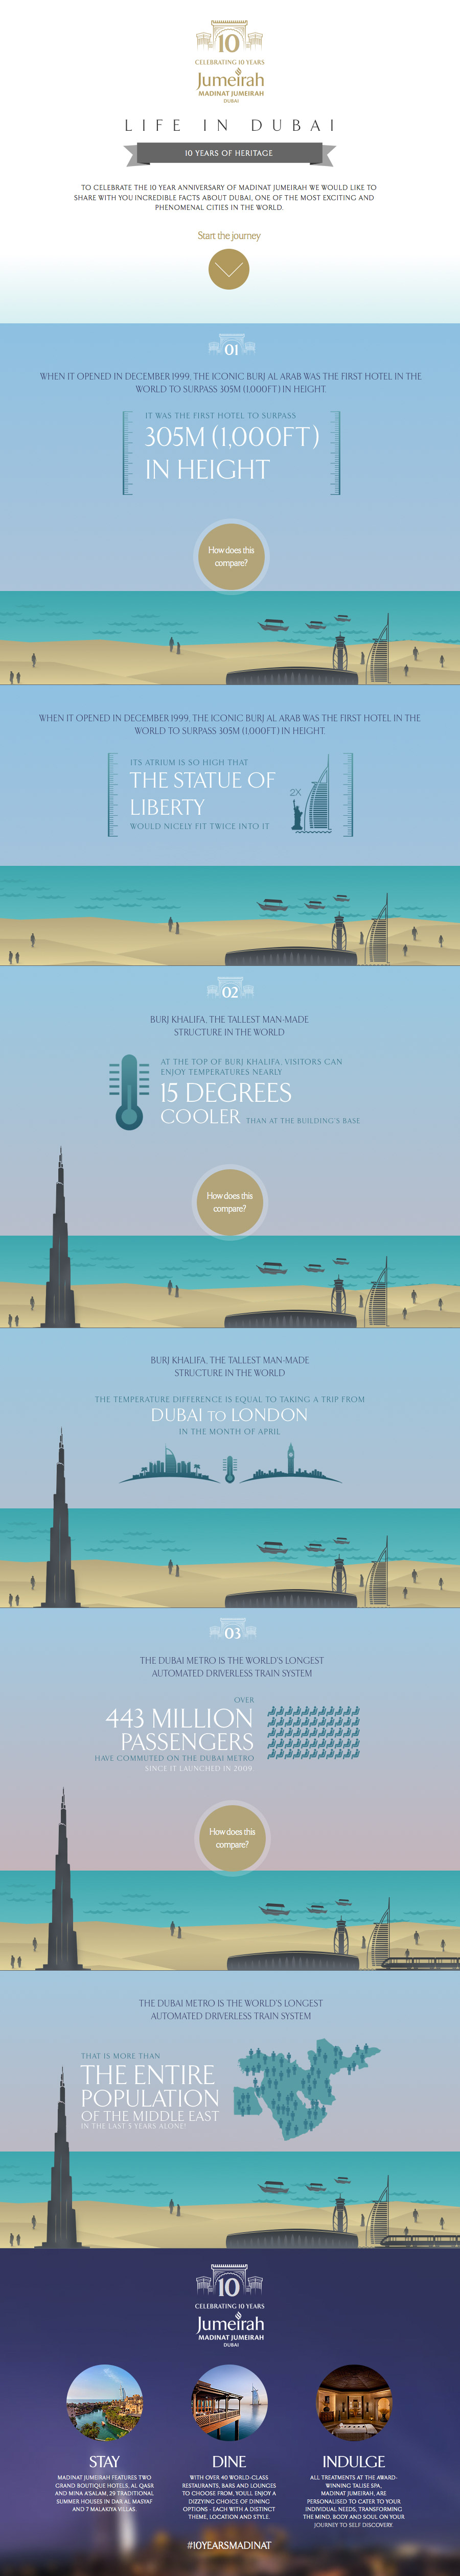 dubai-facts-featured-in-madinat-jumeirah-10th-anniversary-infographic